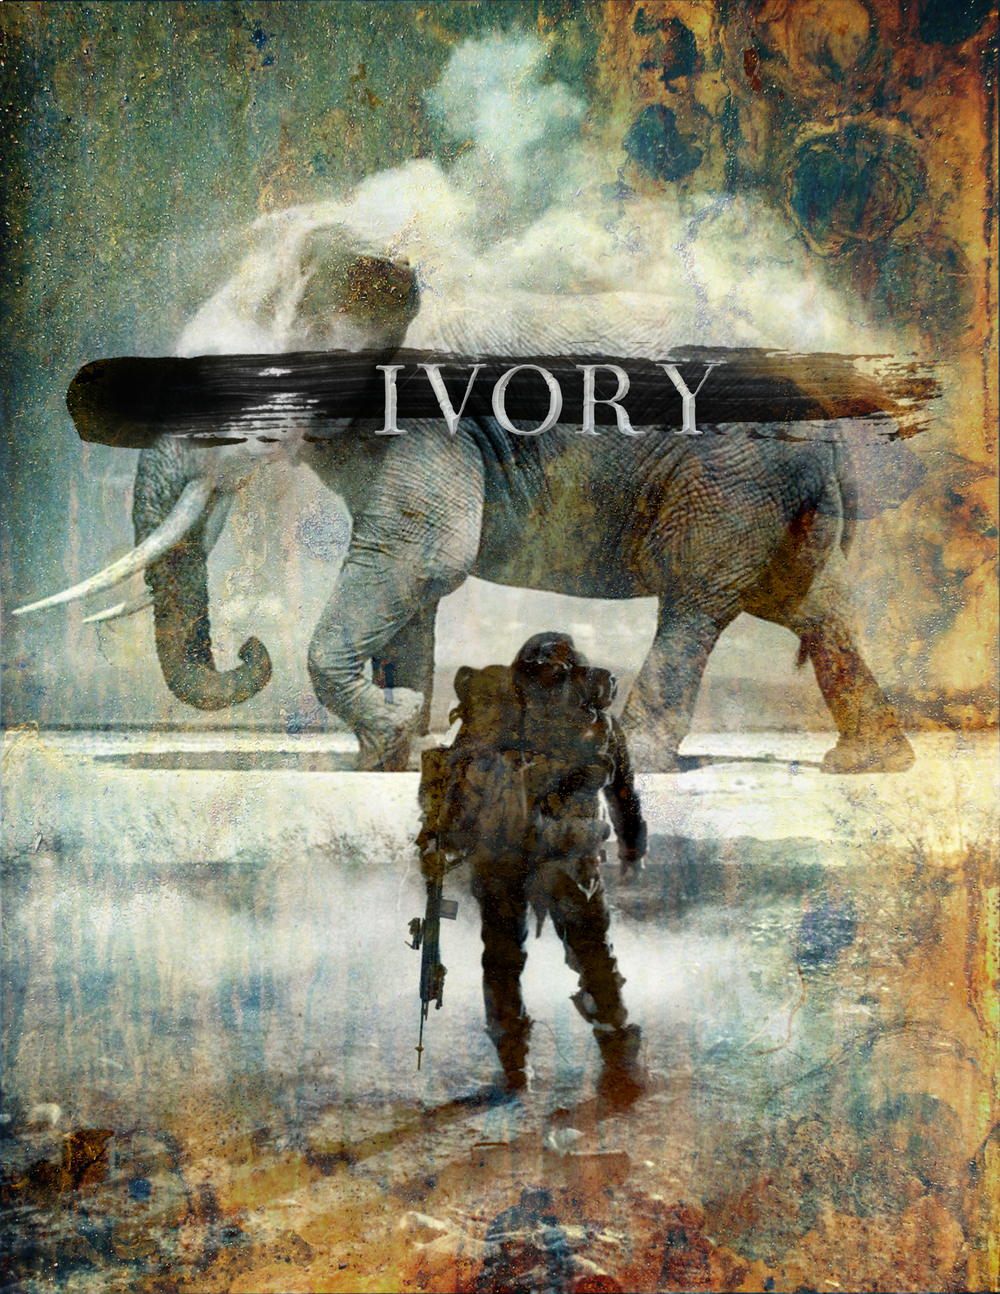 IVORY title poster copy.jpg